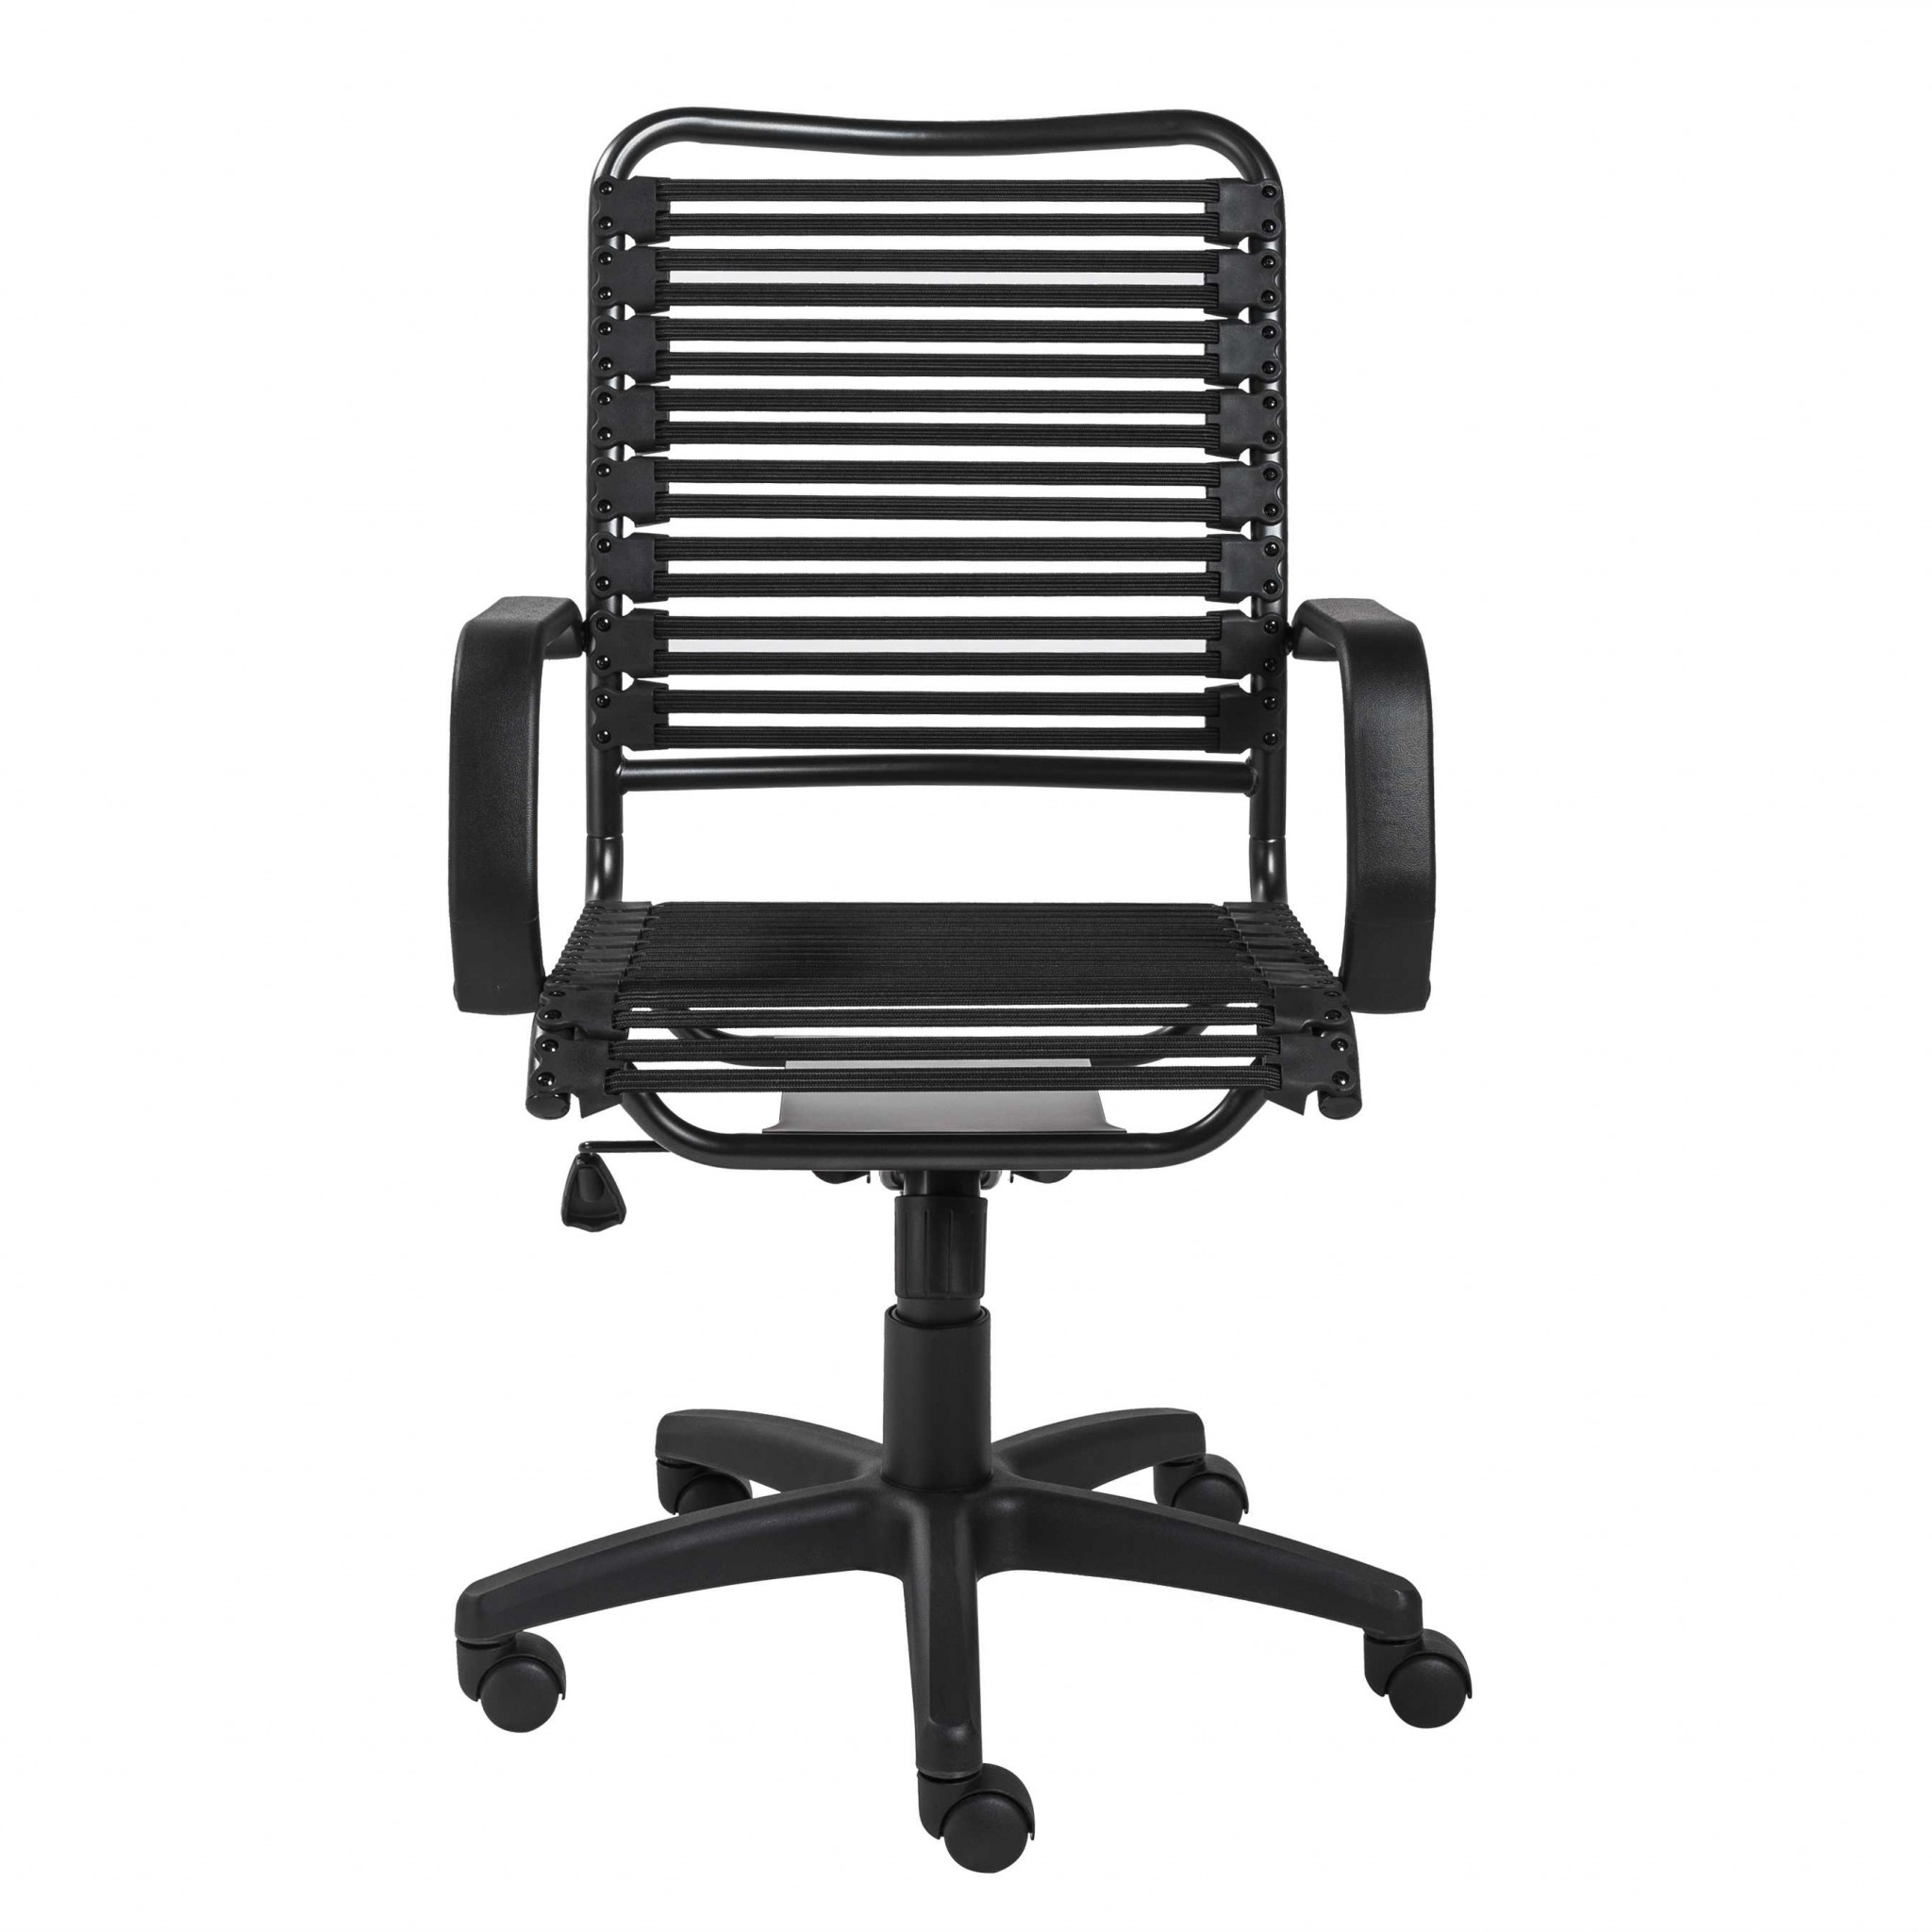 """23.04"""" X 25.6"""" X 41.74"""" Black Flat Bungie Cords High Back Office Chair with Graphite Black Frame and Base"""